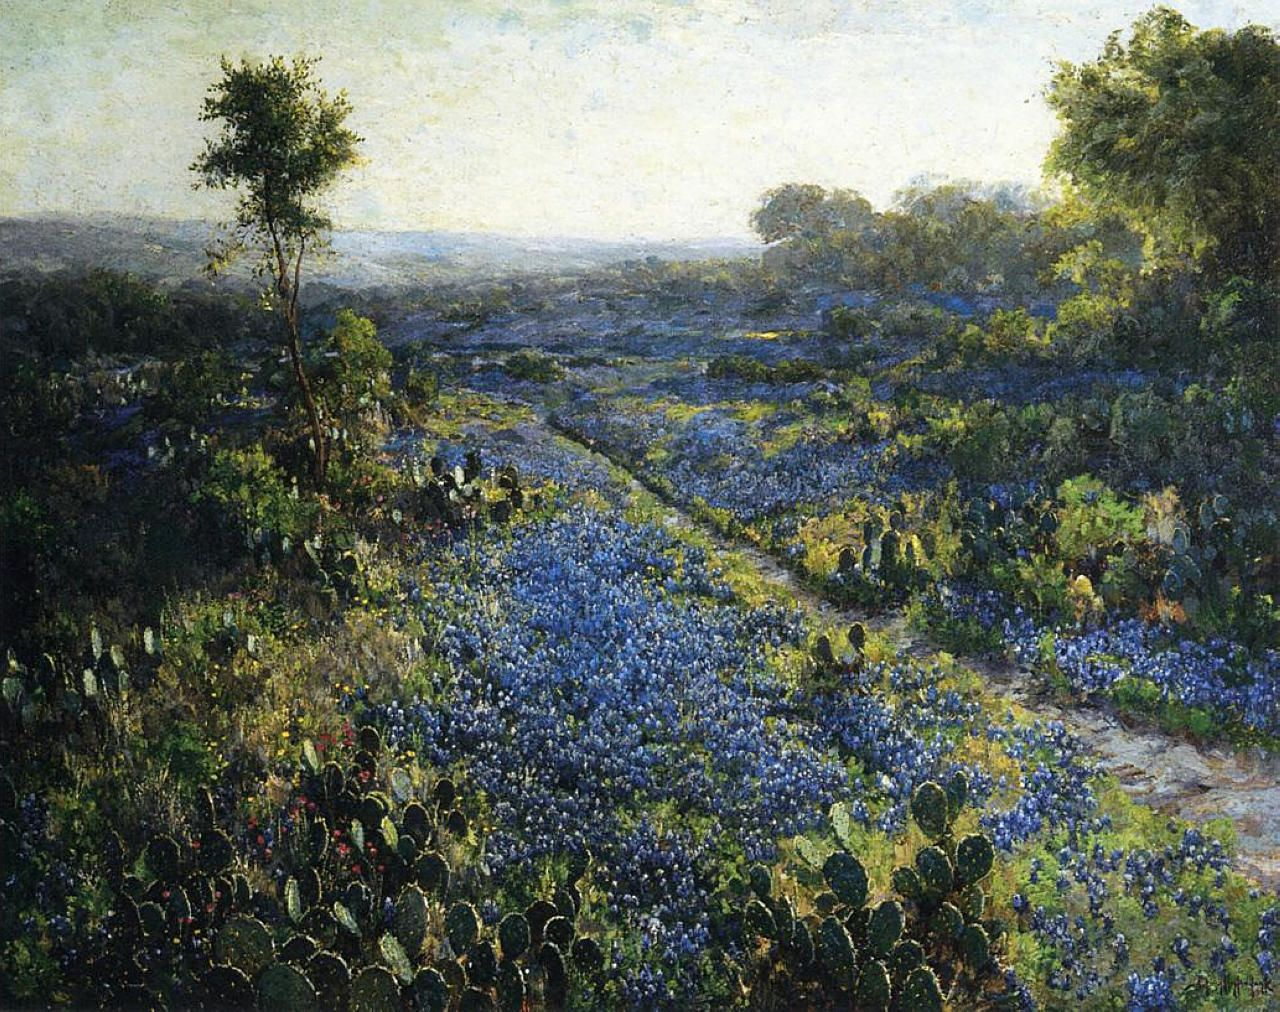 field-of-texas-bluebonnets-and-prickly-pear-cacti Artist: Robert Julian Onderdonk